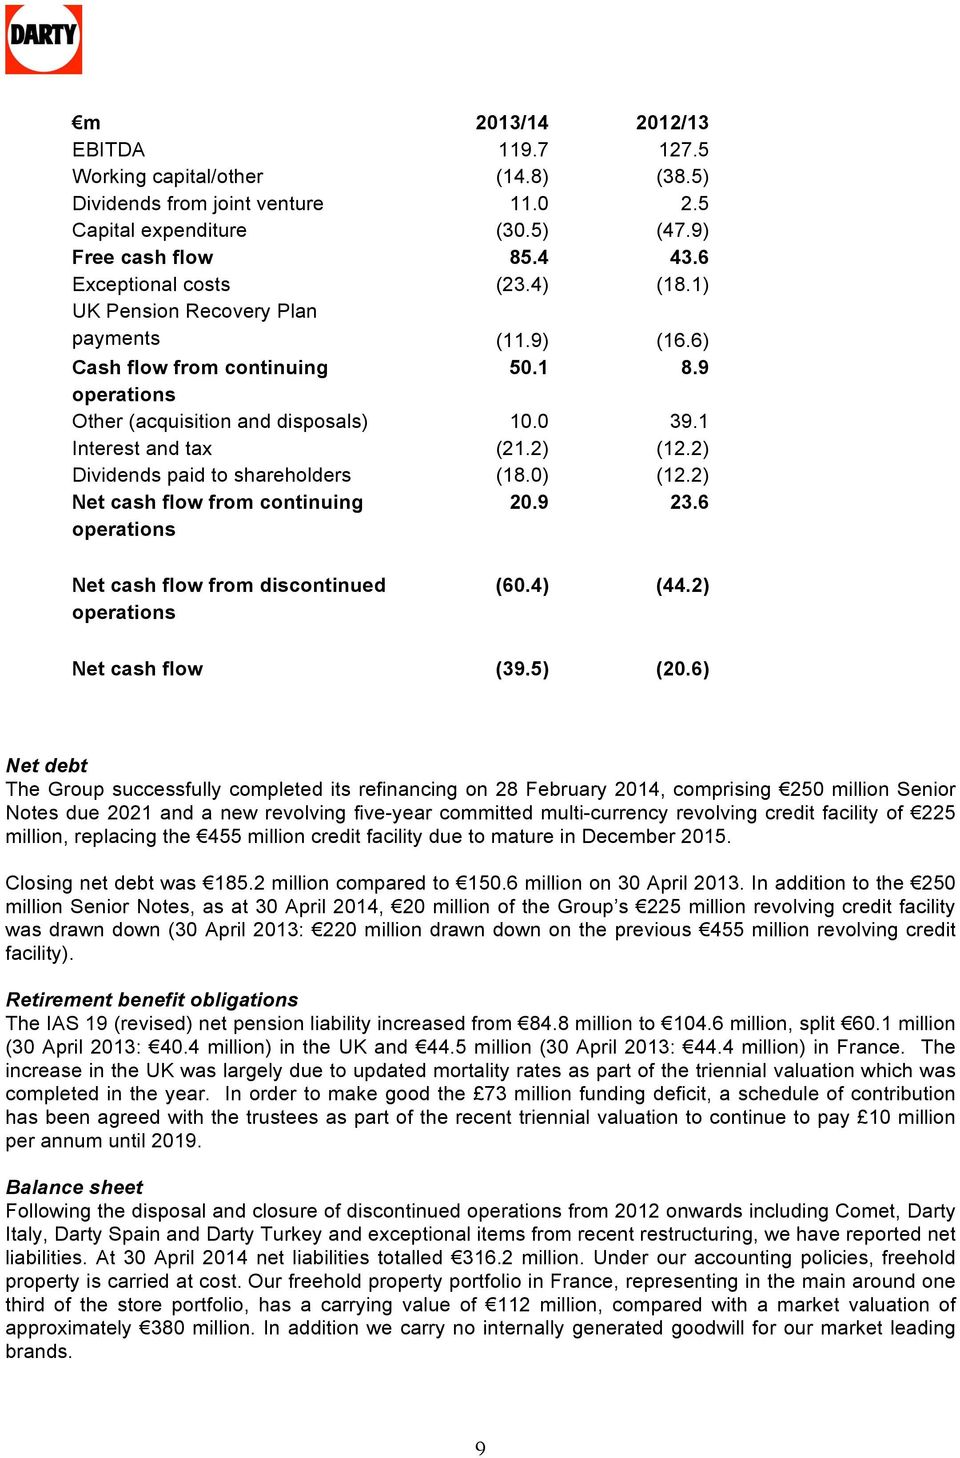 1 Interest and tax (21.2) (12.2) Dividends paid to shareholders (18.0) (12.2) Net cash flow from continuing operations 20.9 23.6 Net cash flow from discontinued operations (60.4) (44.